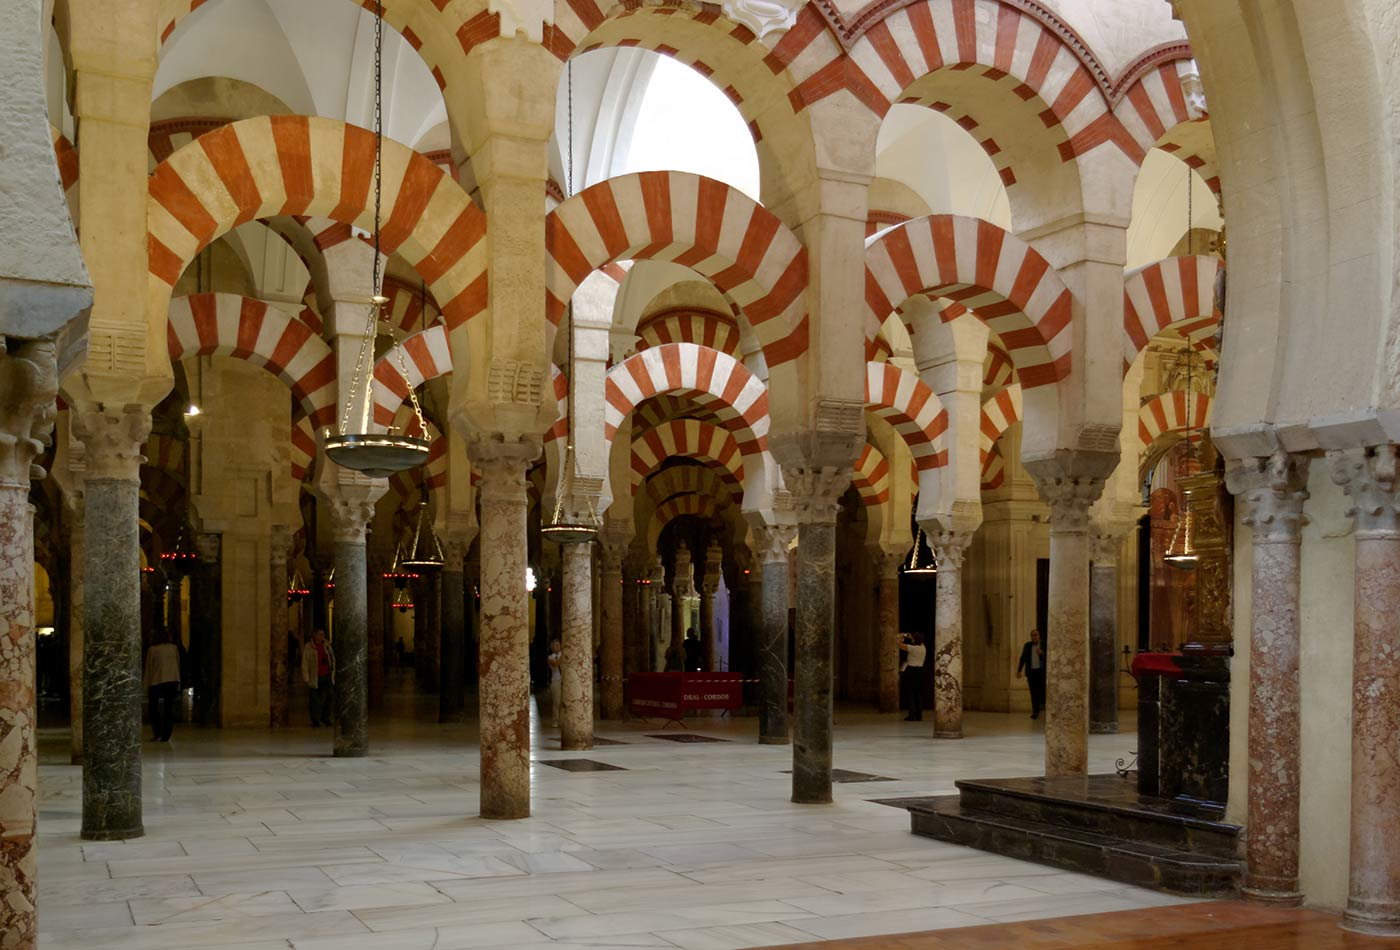 Spain, Cordoba, Mosque-Cathedral.